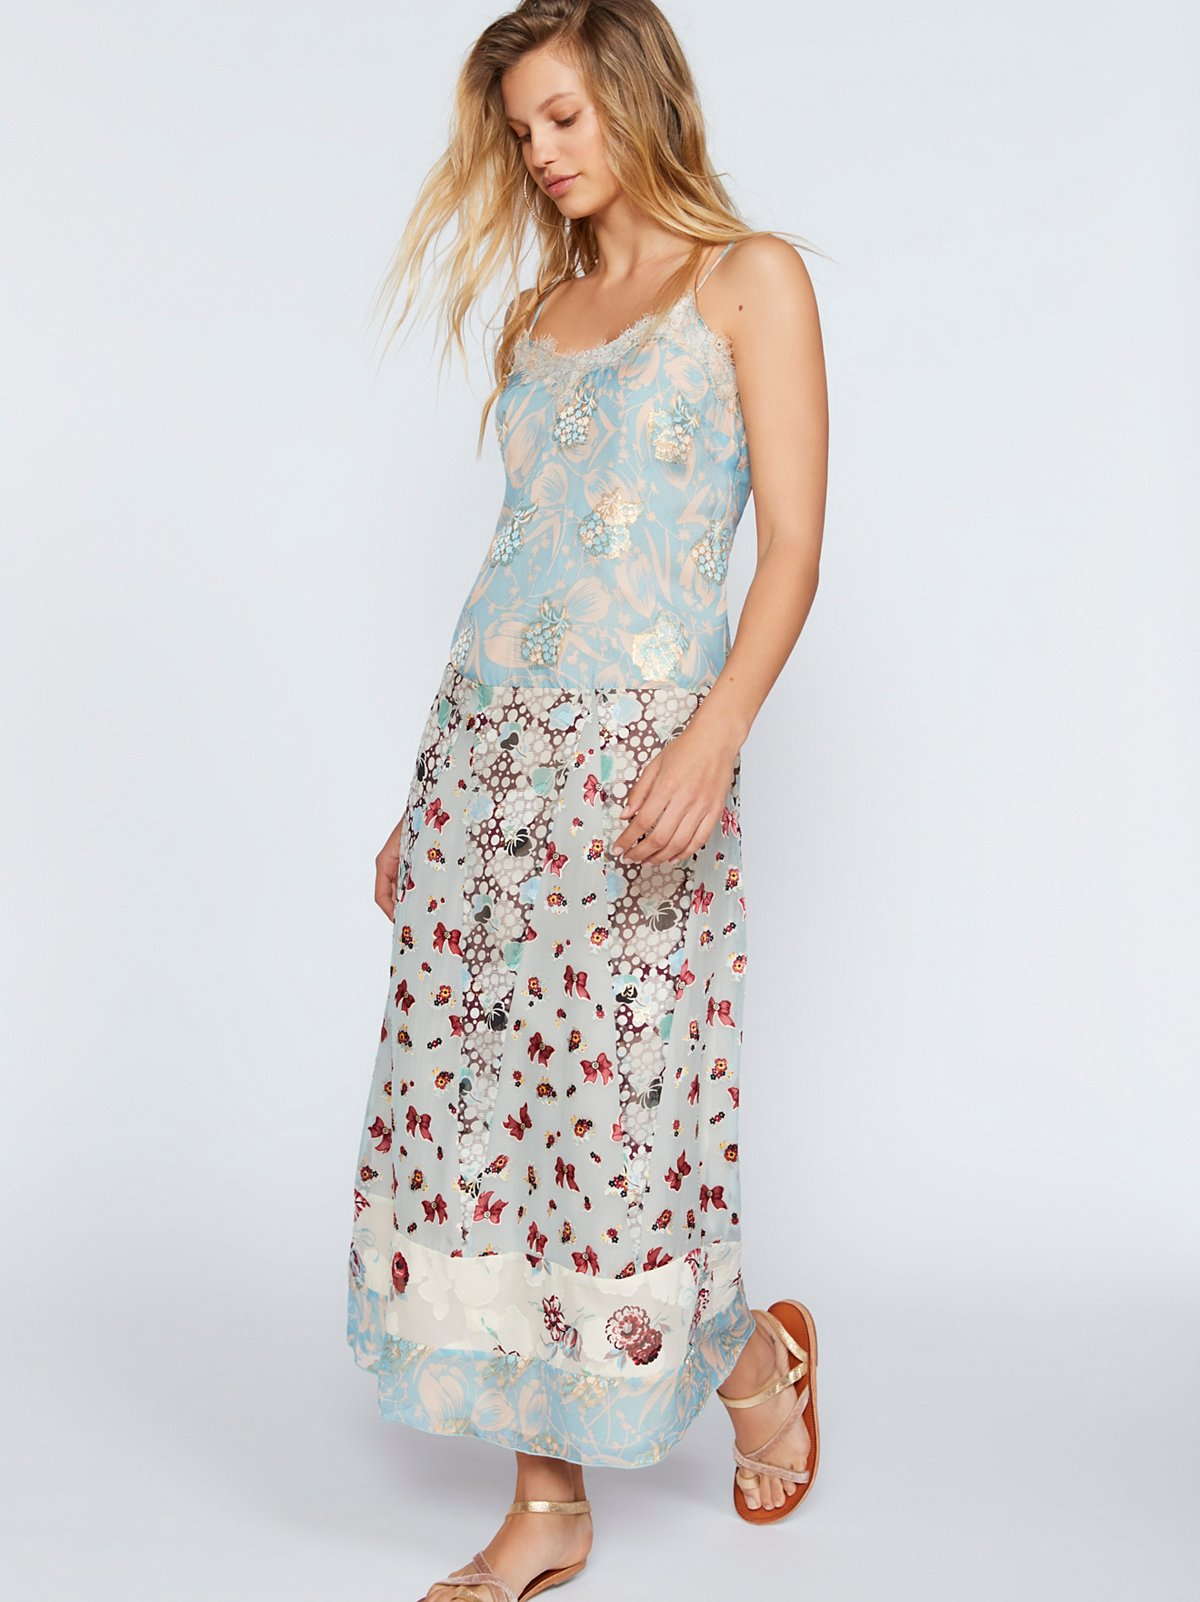 Tip Through The Tulips Slip Dress